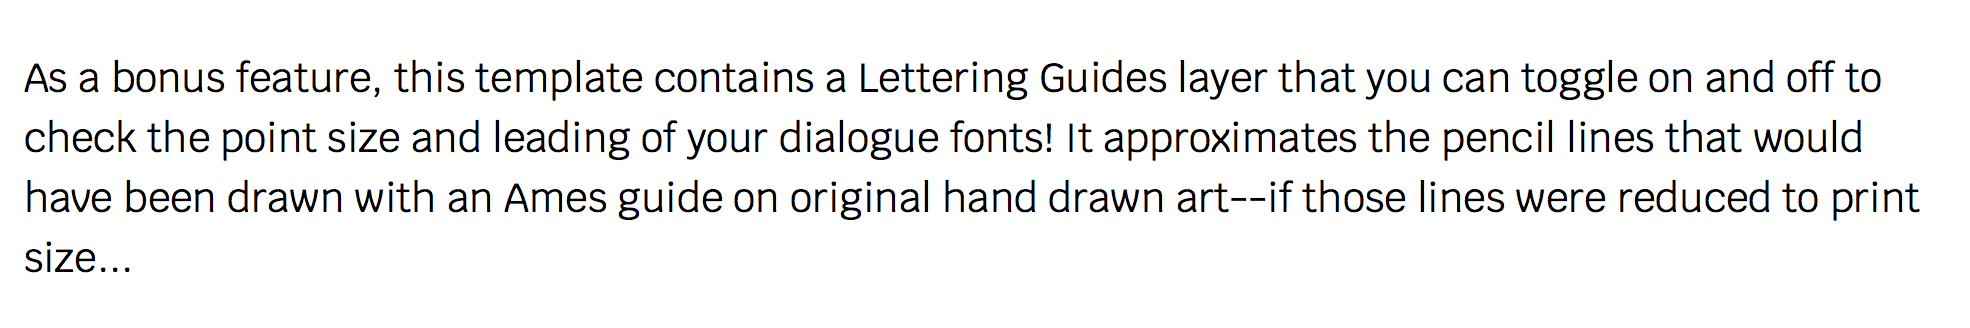 Comic Book Lettering Templates